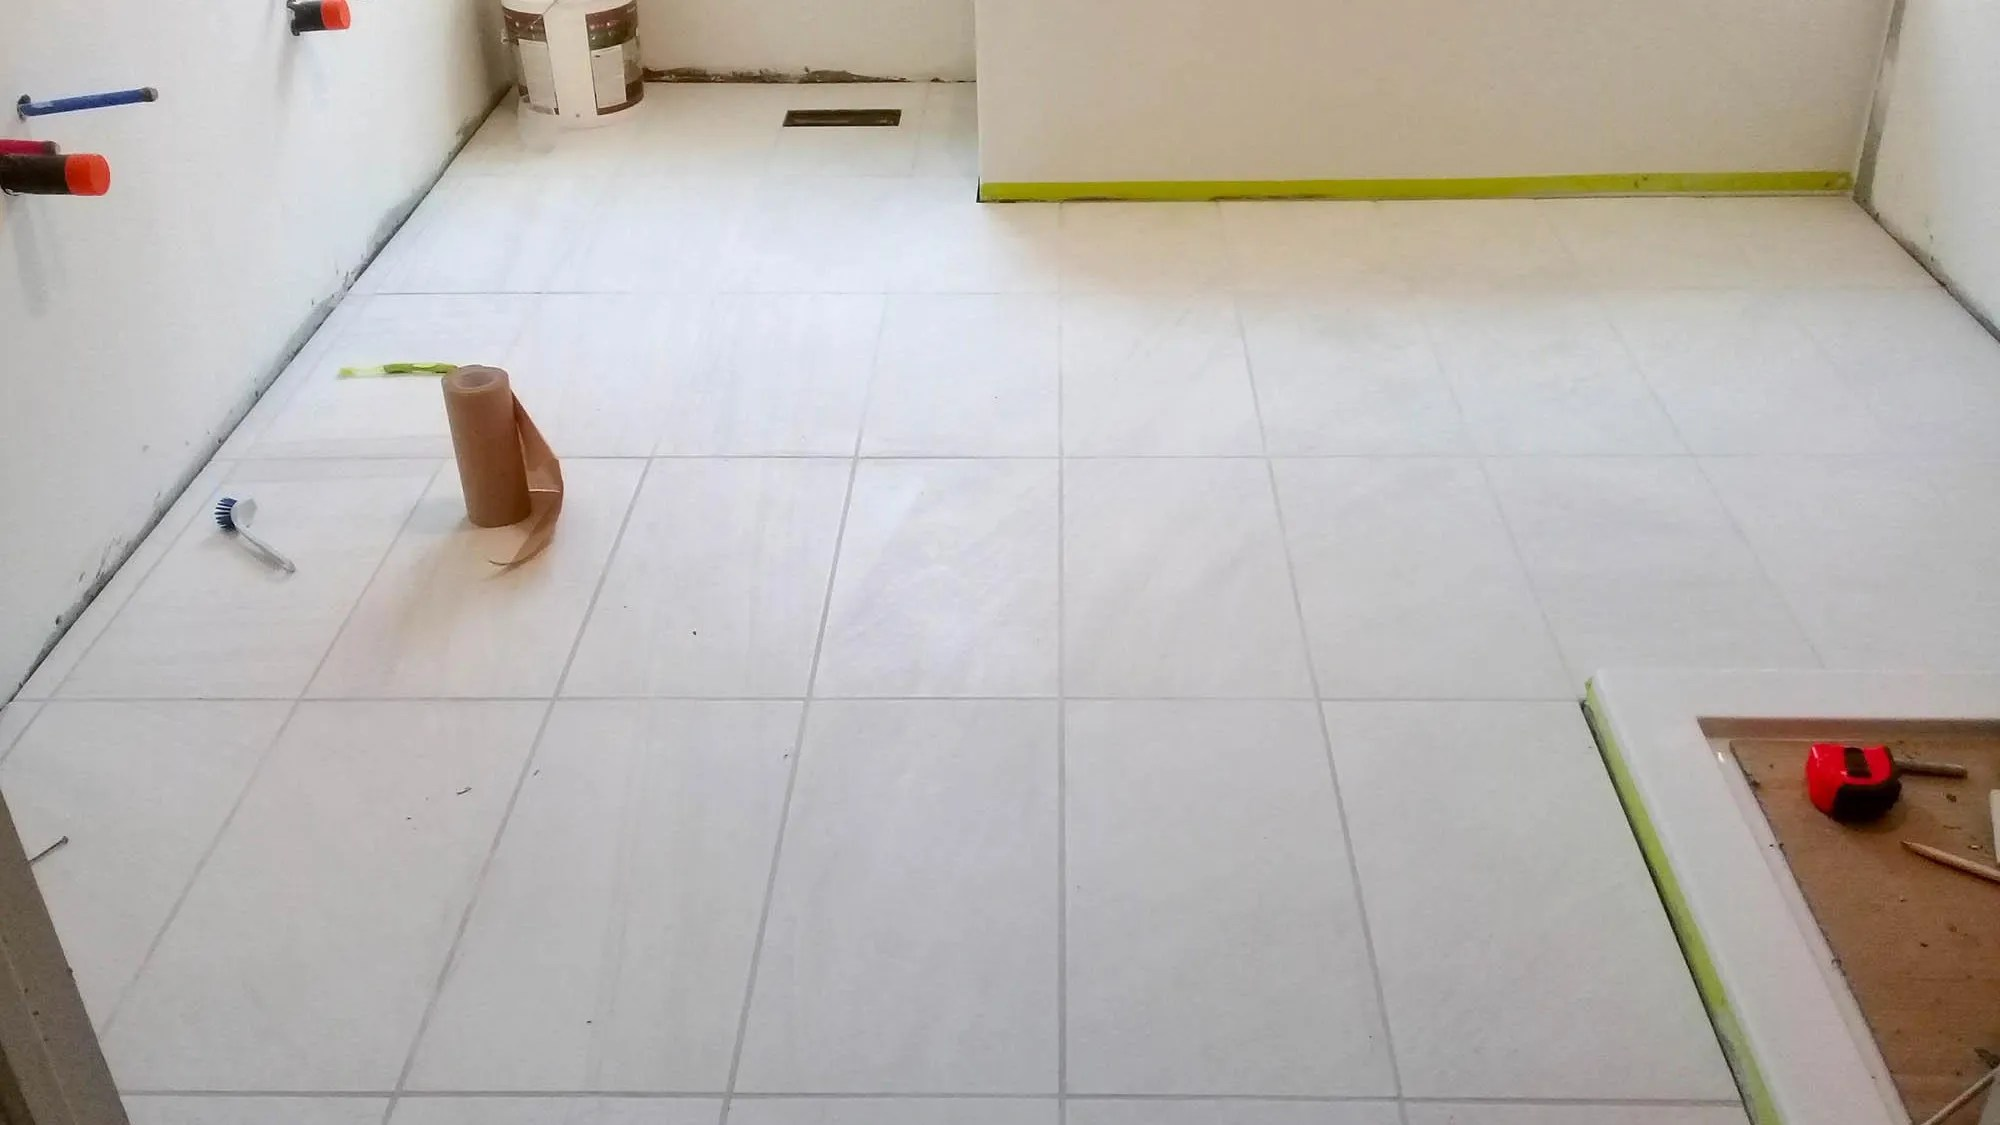 let tile grout dry fully before